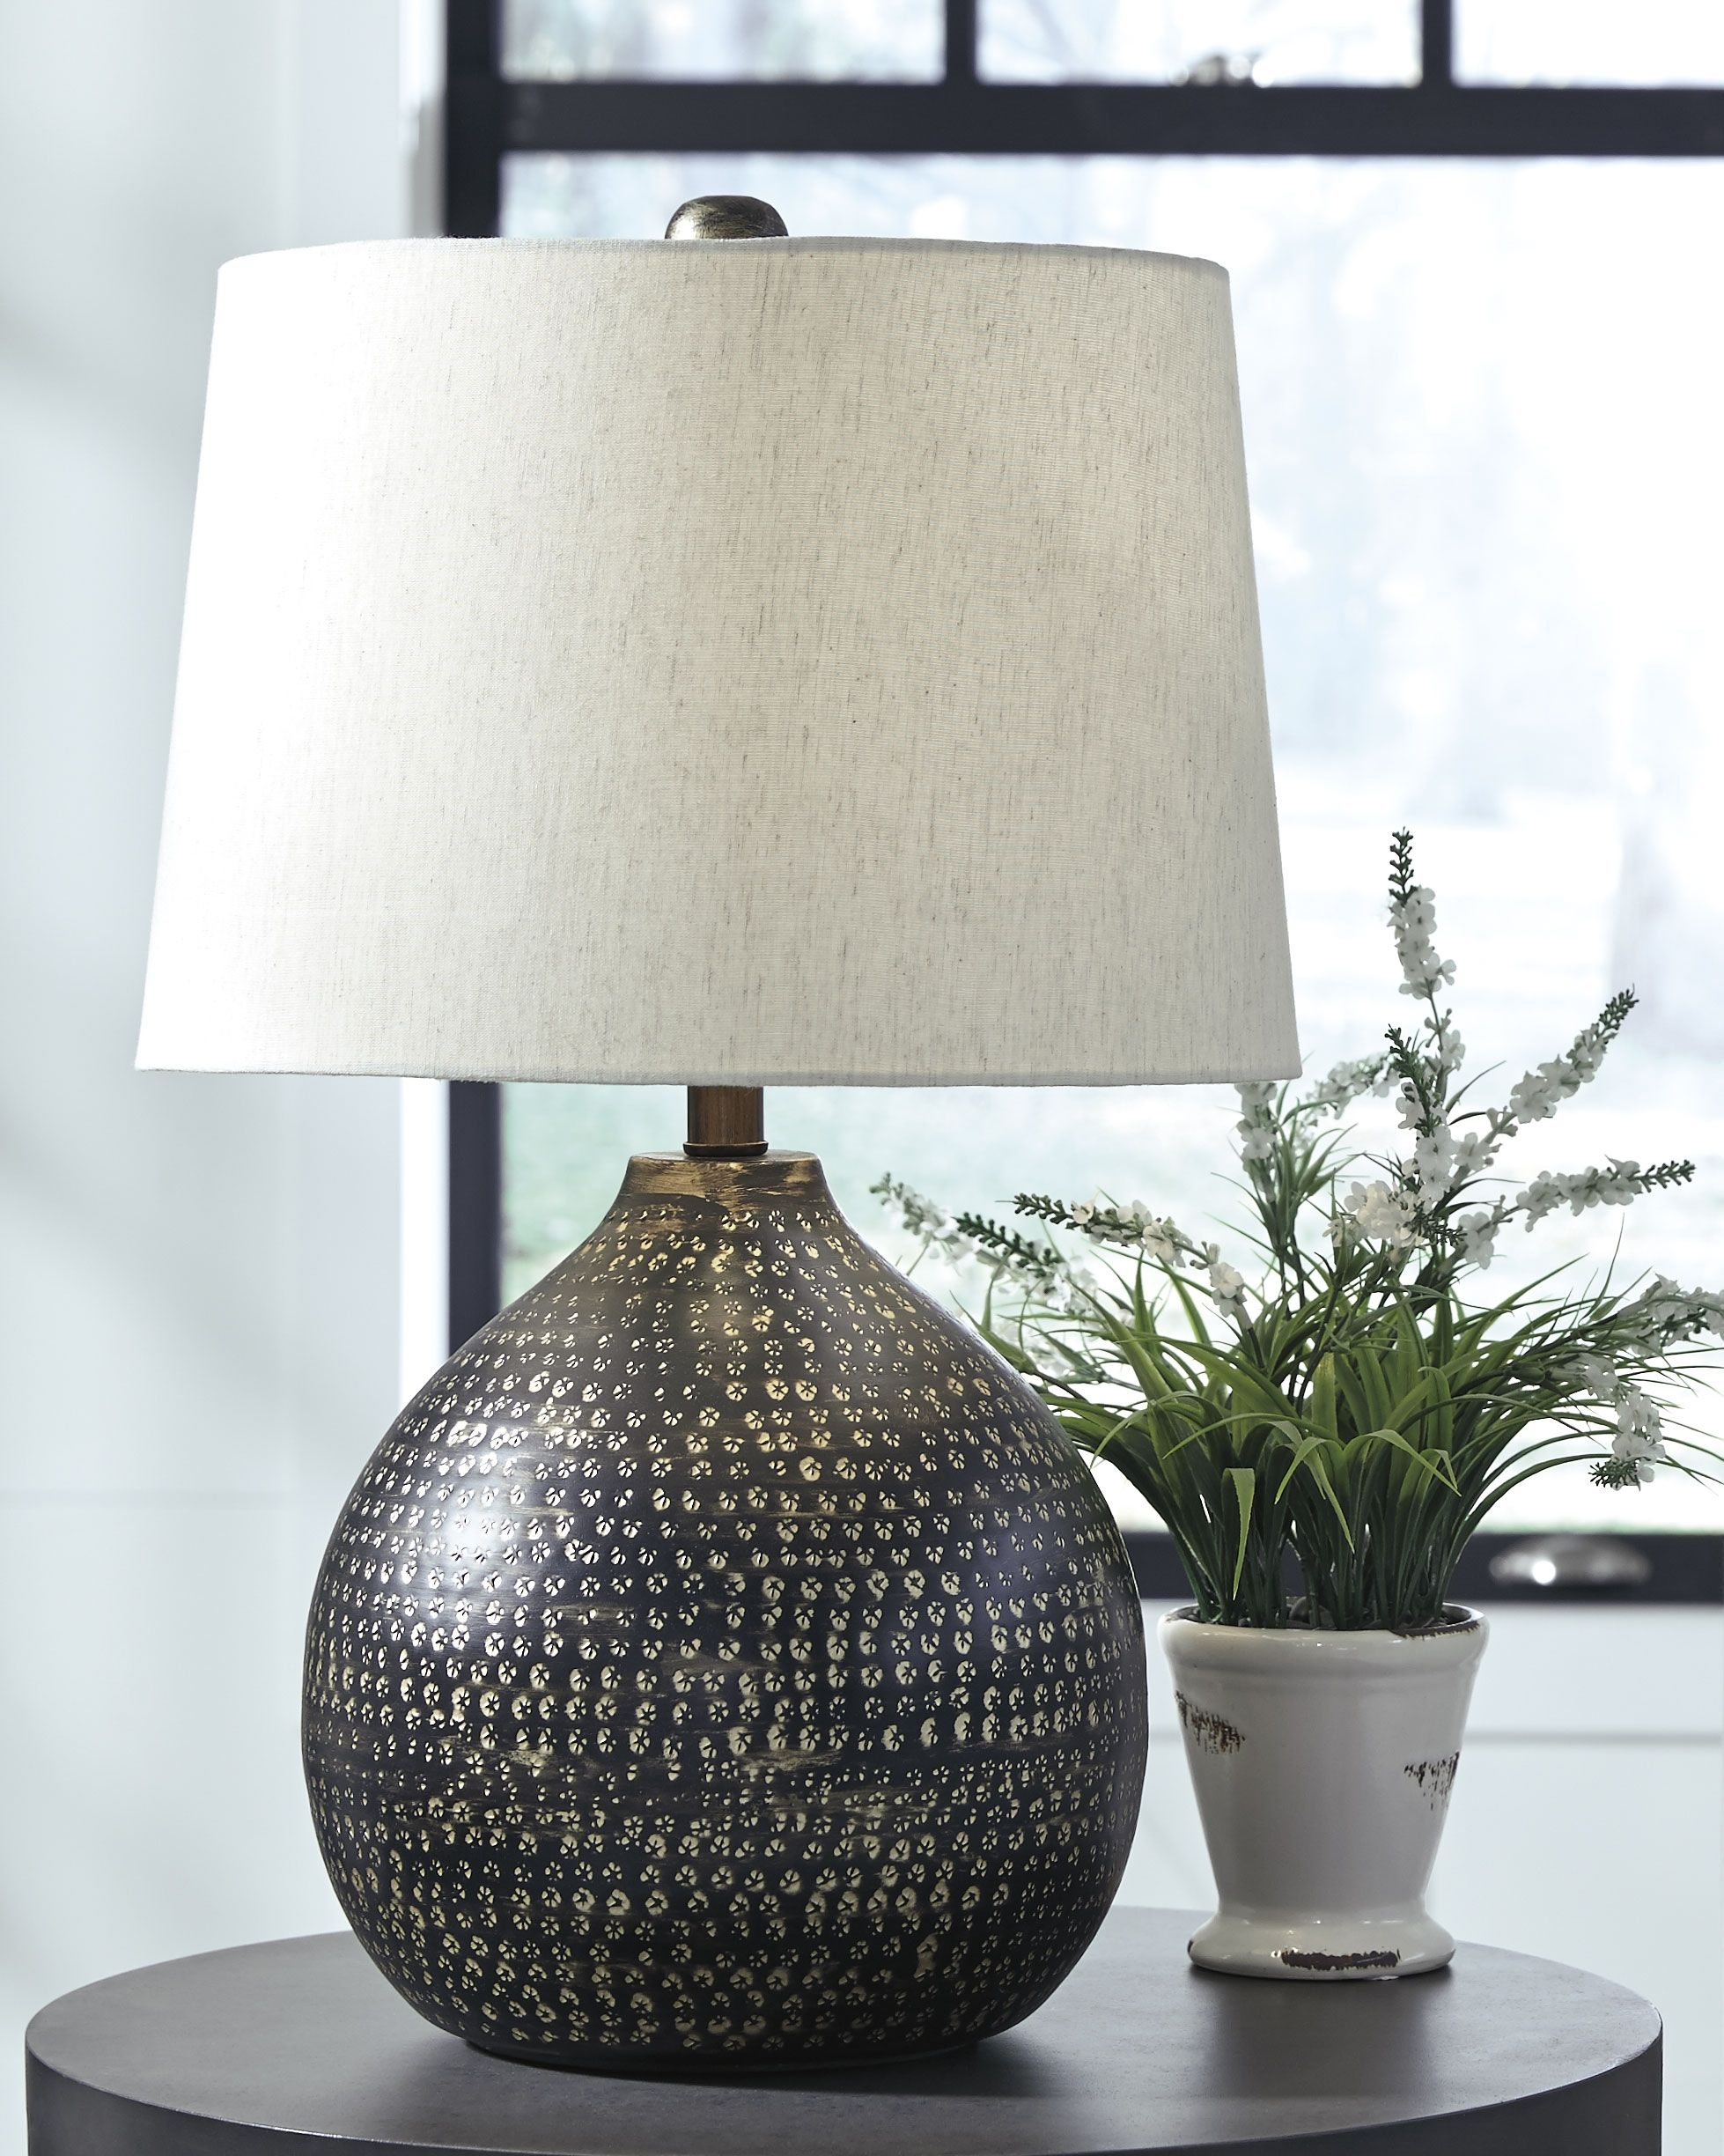 Maire Table Lamp In 2020 Metal Table Lamps Black Table Lamps Table Lamp